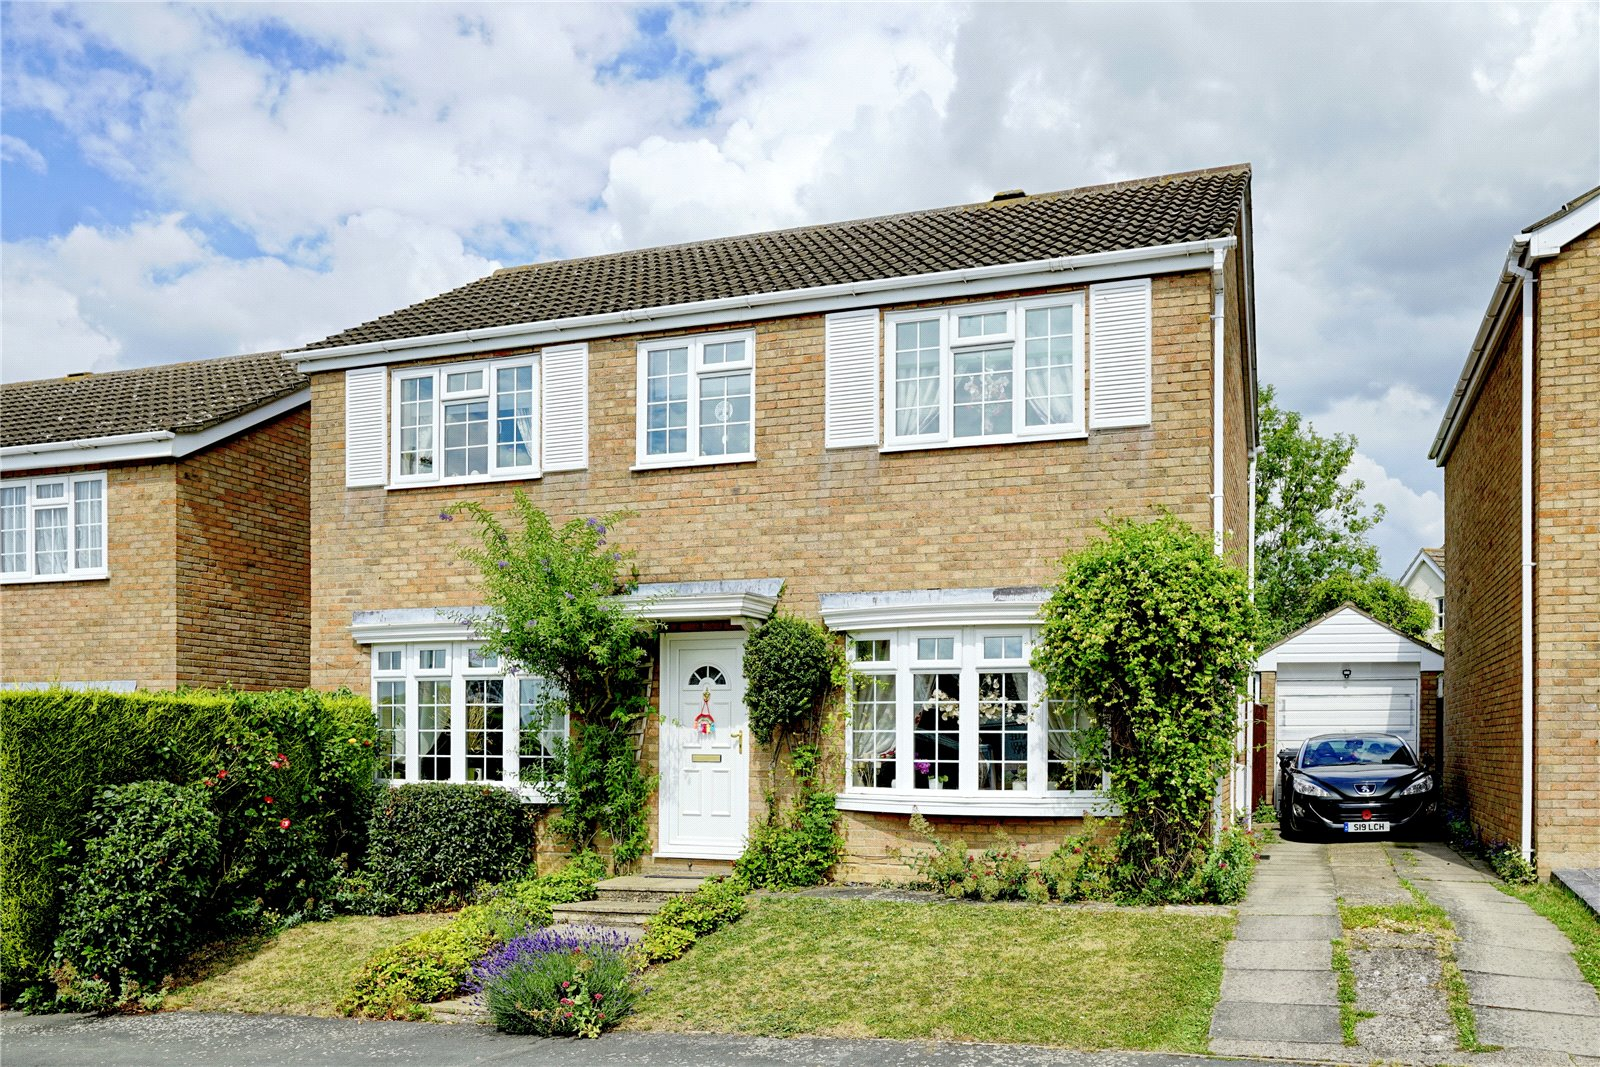 4 bed house for sale in Great Paxton, Meadow Way, PE19 6RR  - Property Image 1